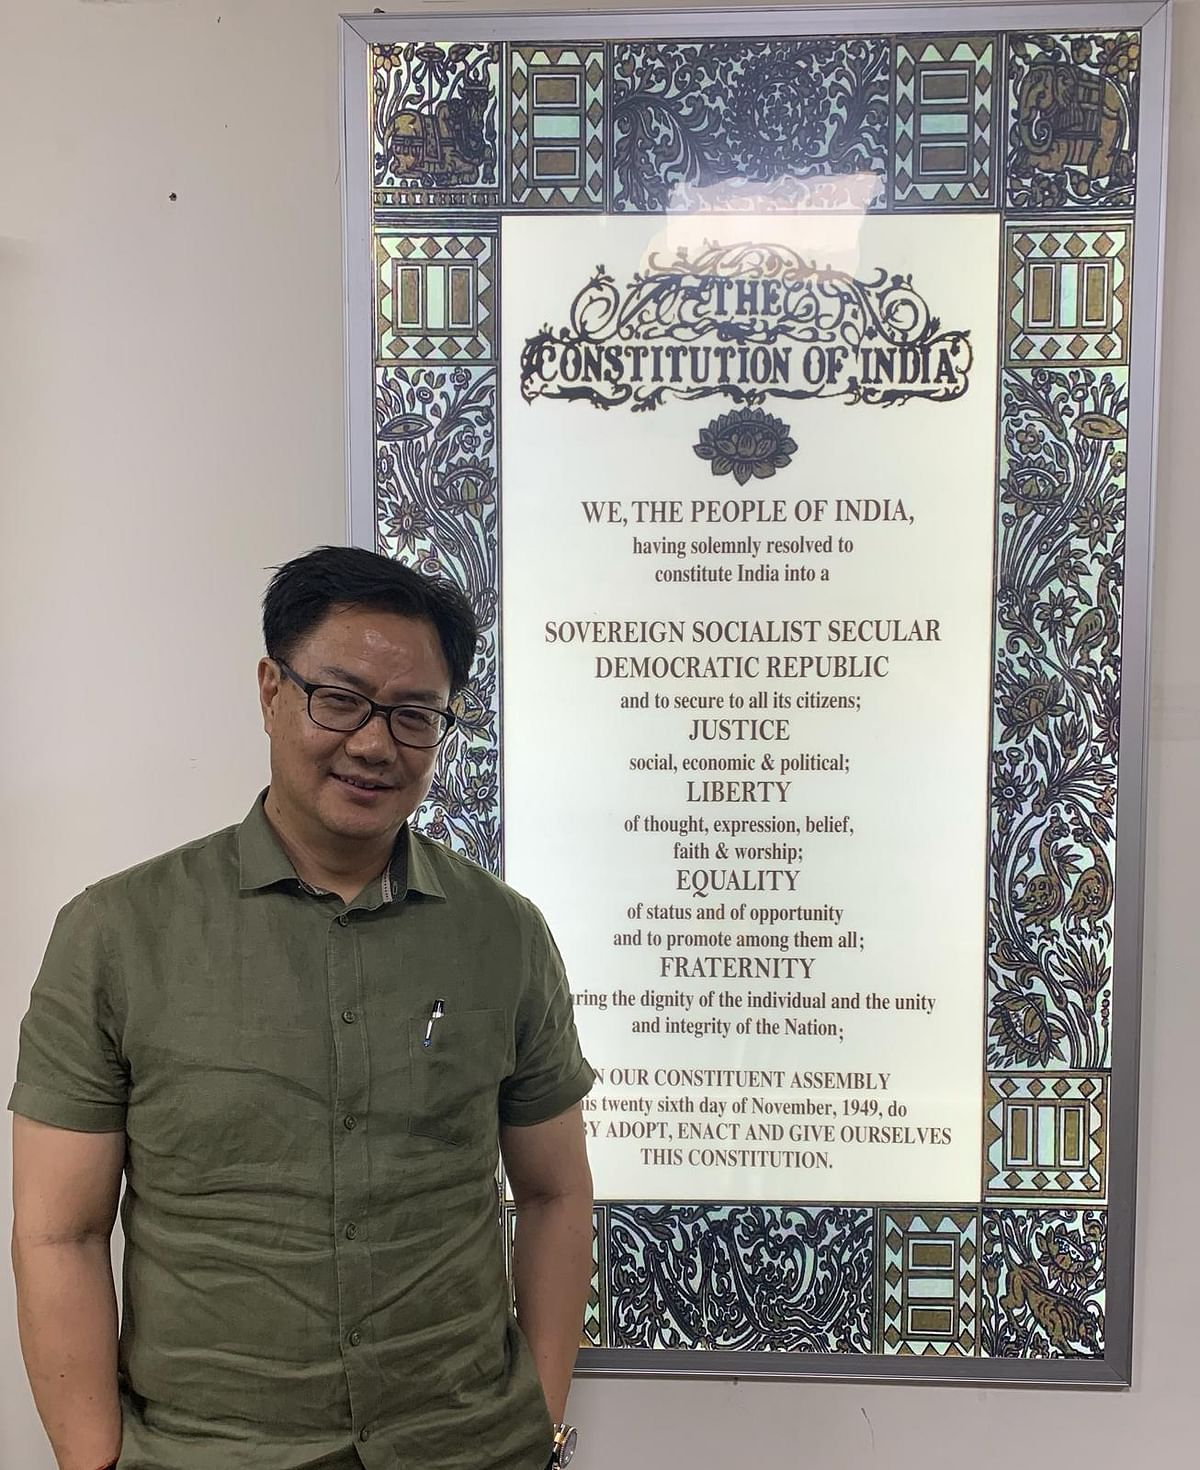 Union minister of state for youth affairs and sports Kiren Rijiju with a huge wall hanging depicting the Preamble to the Constitution of India at his home-office in New Delhi